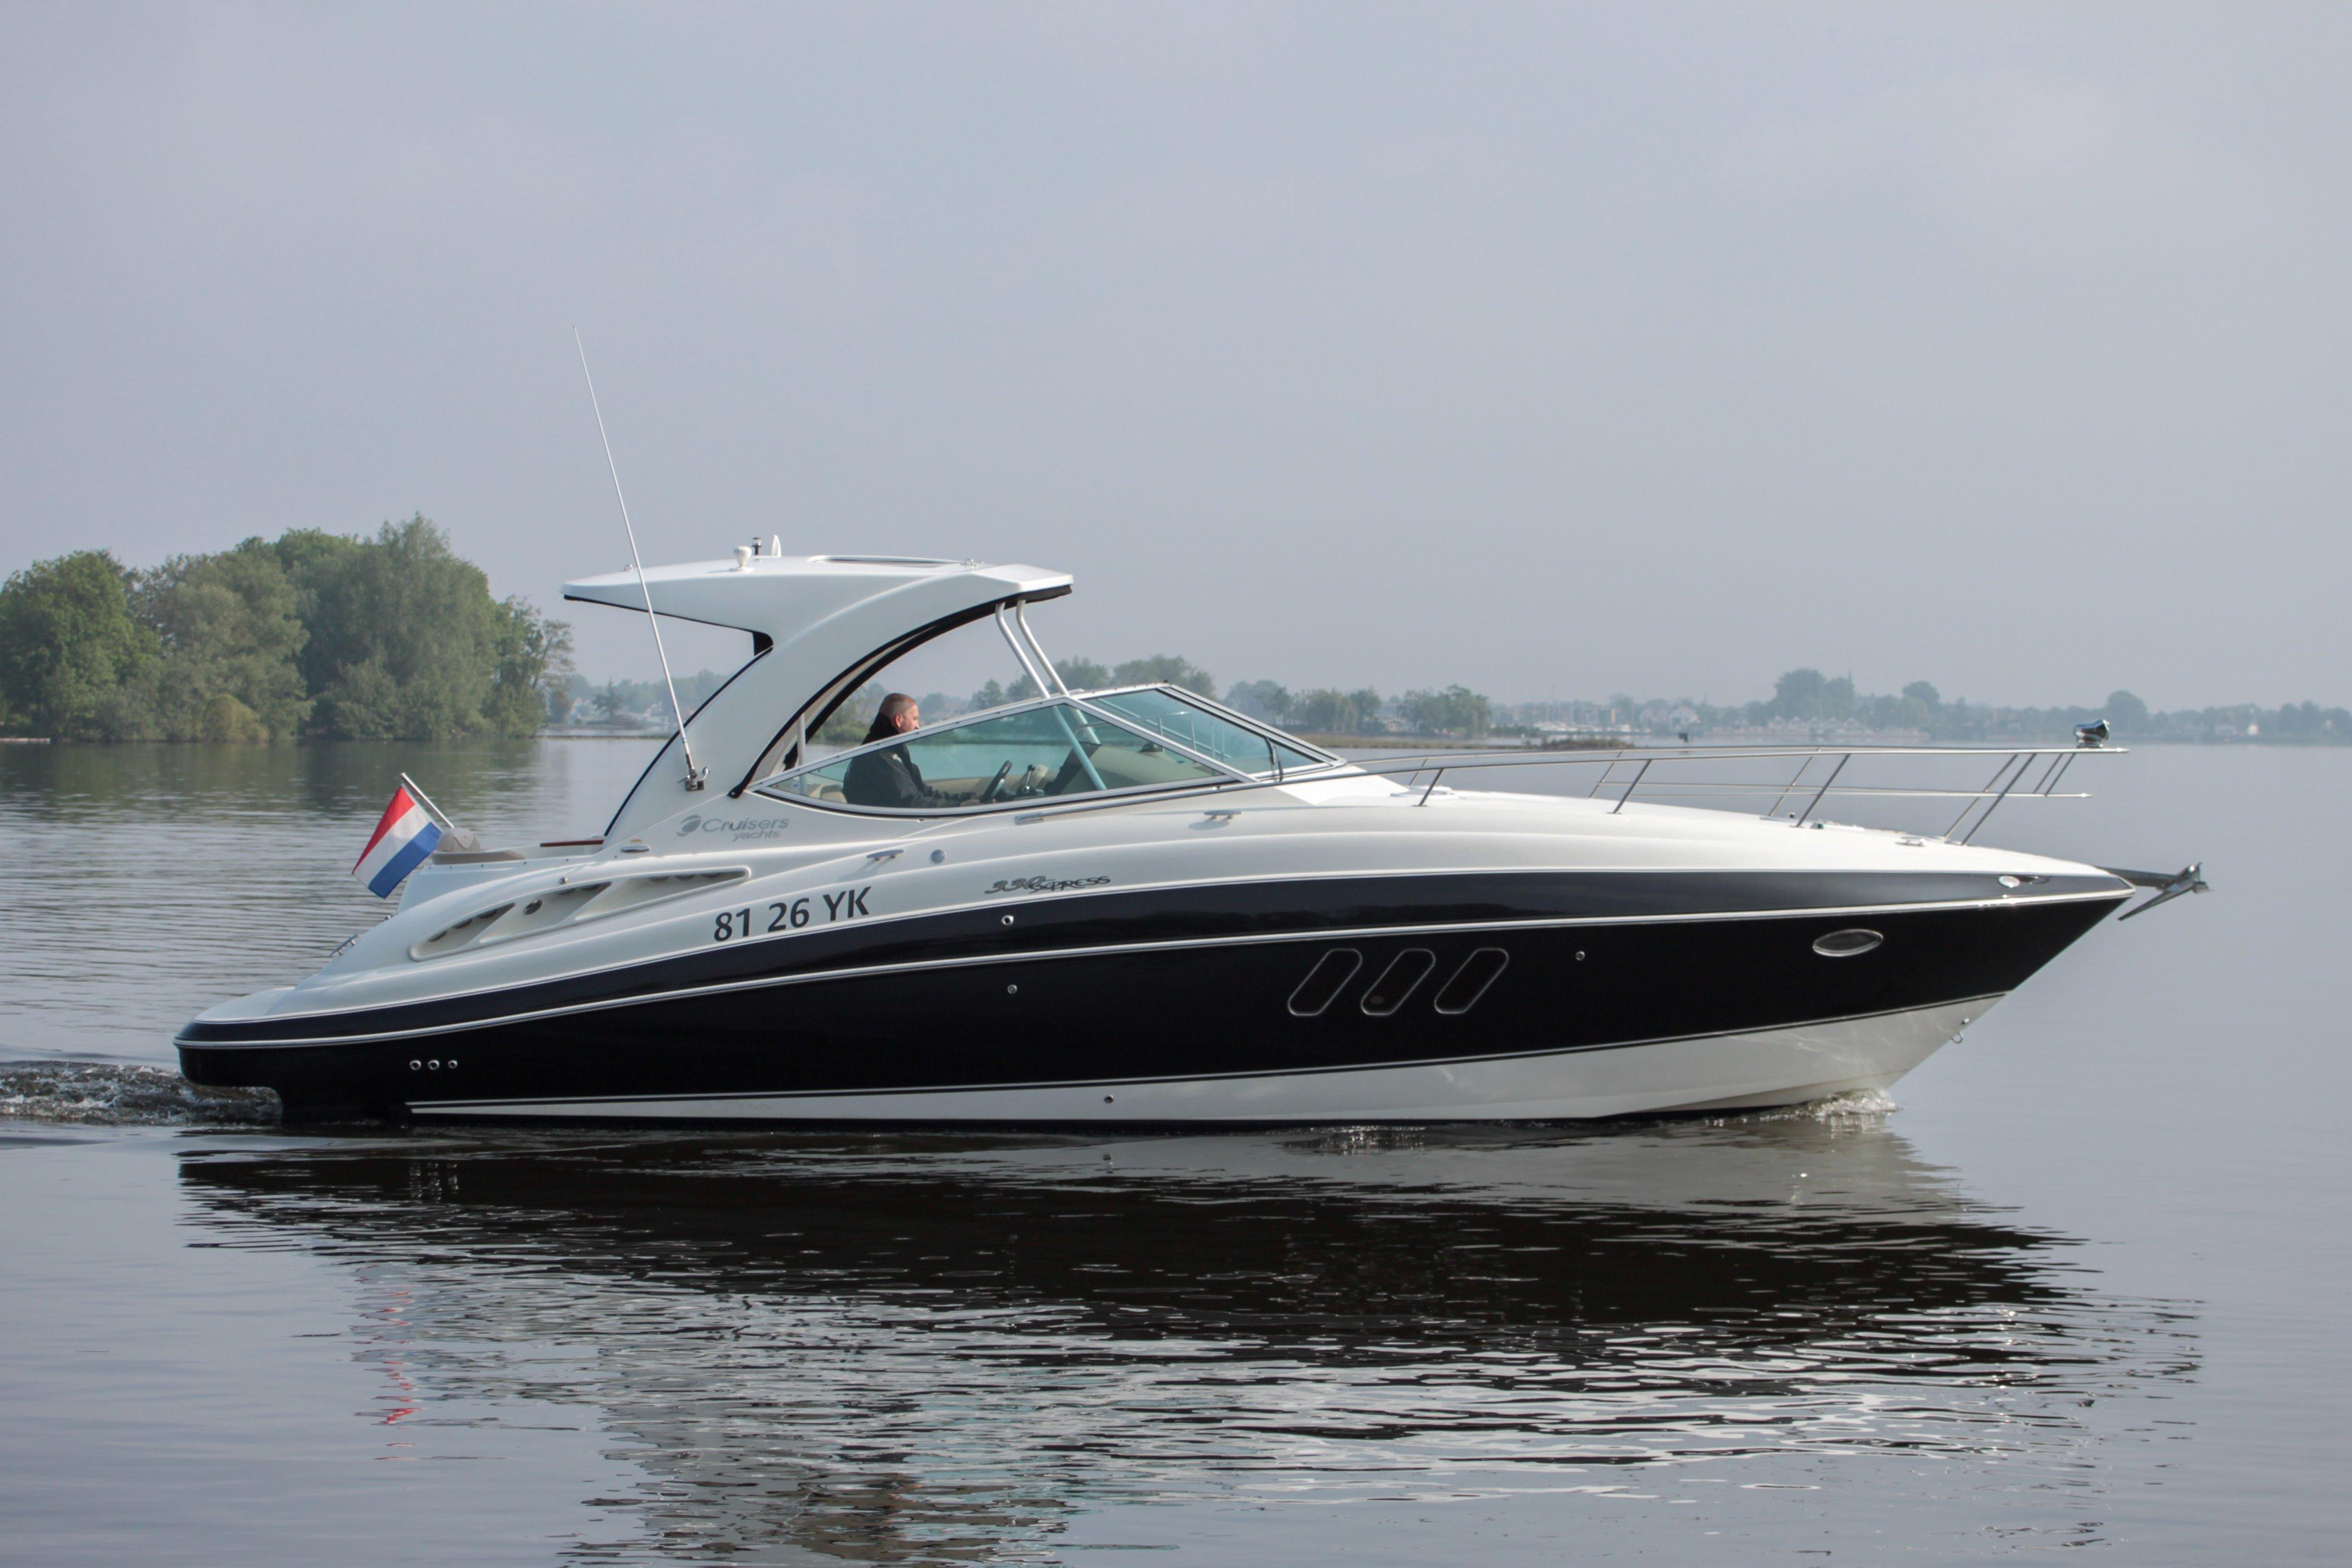 2010 CRUISER YACHT 330 Express Power Boat For Sale Wwwyachtworldcom